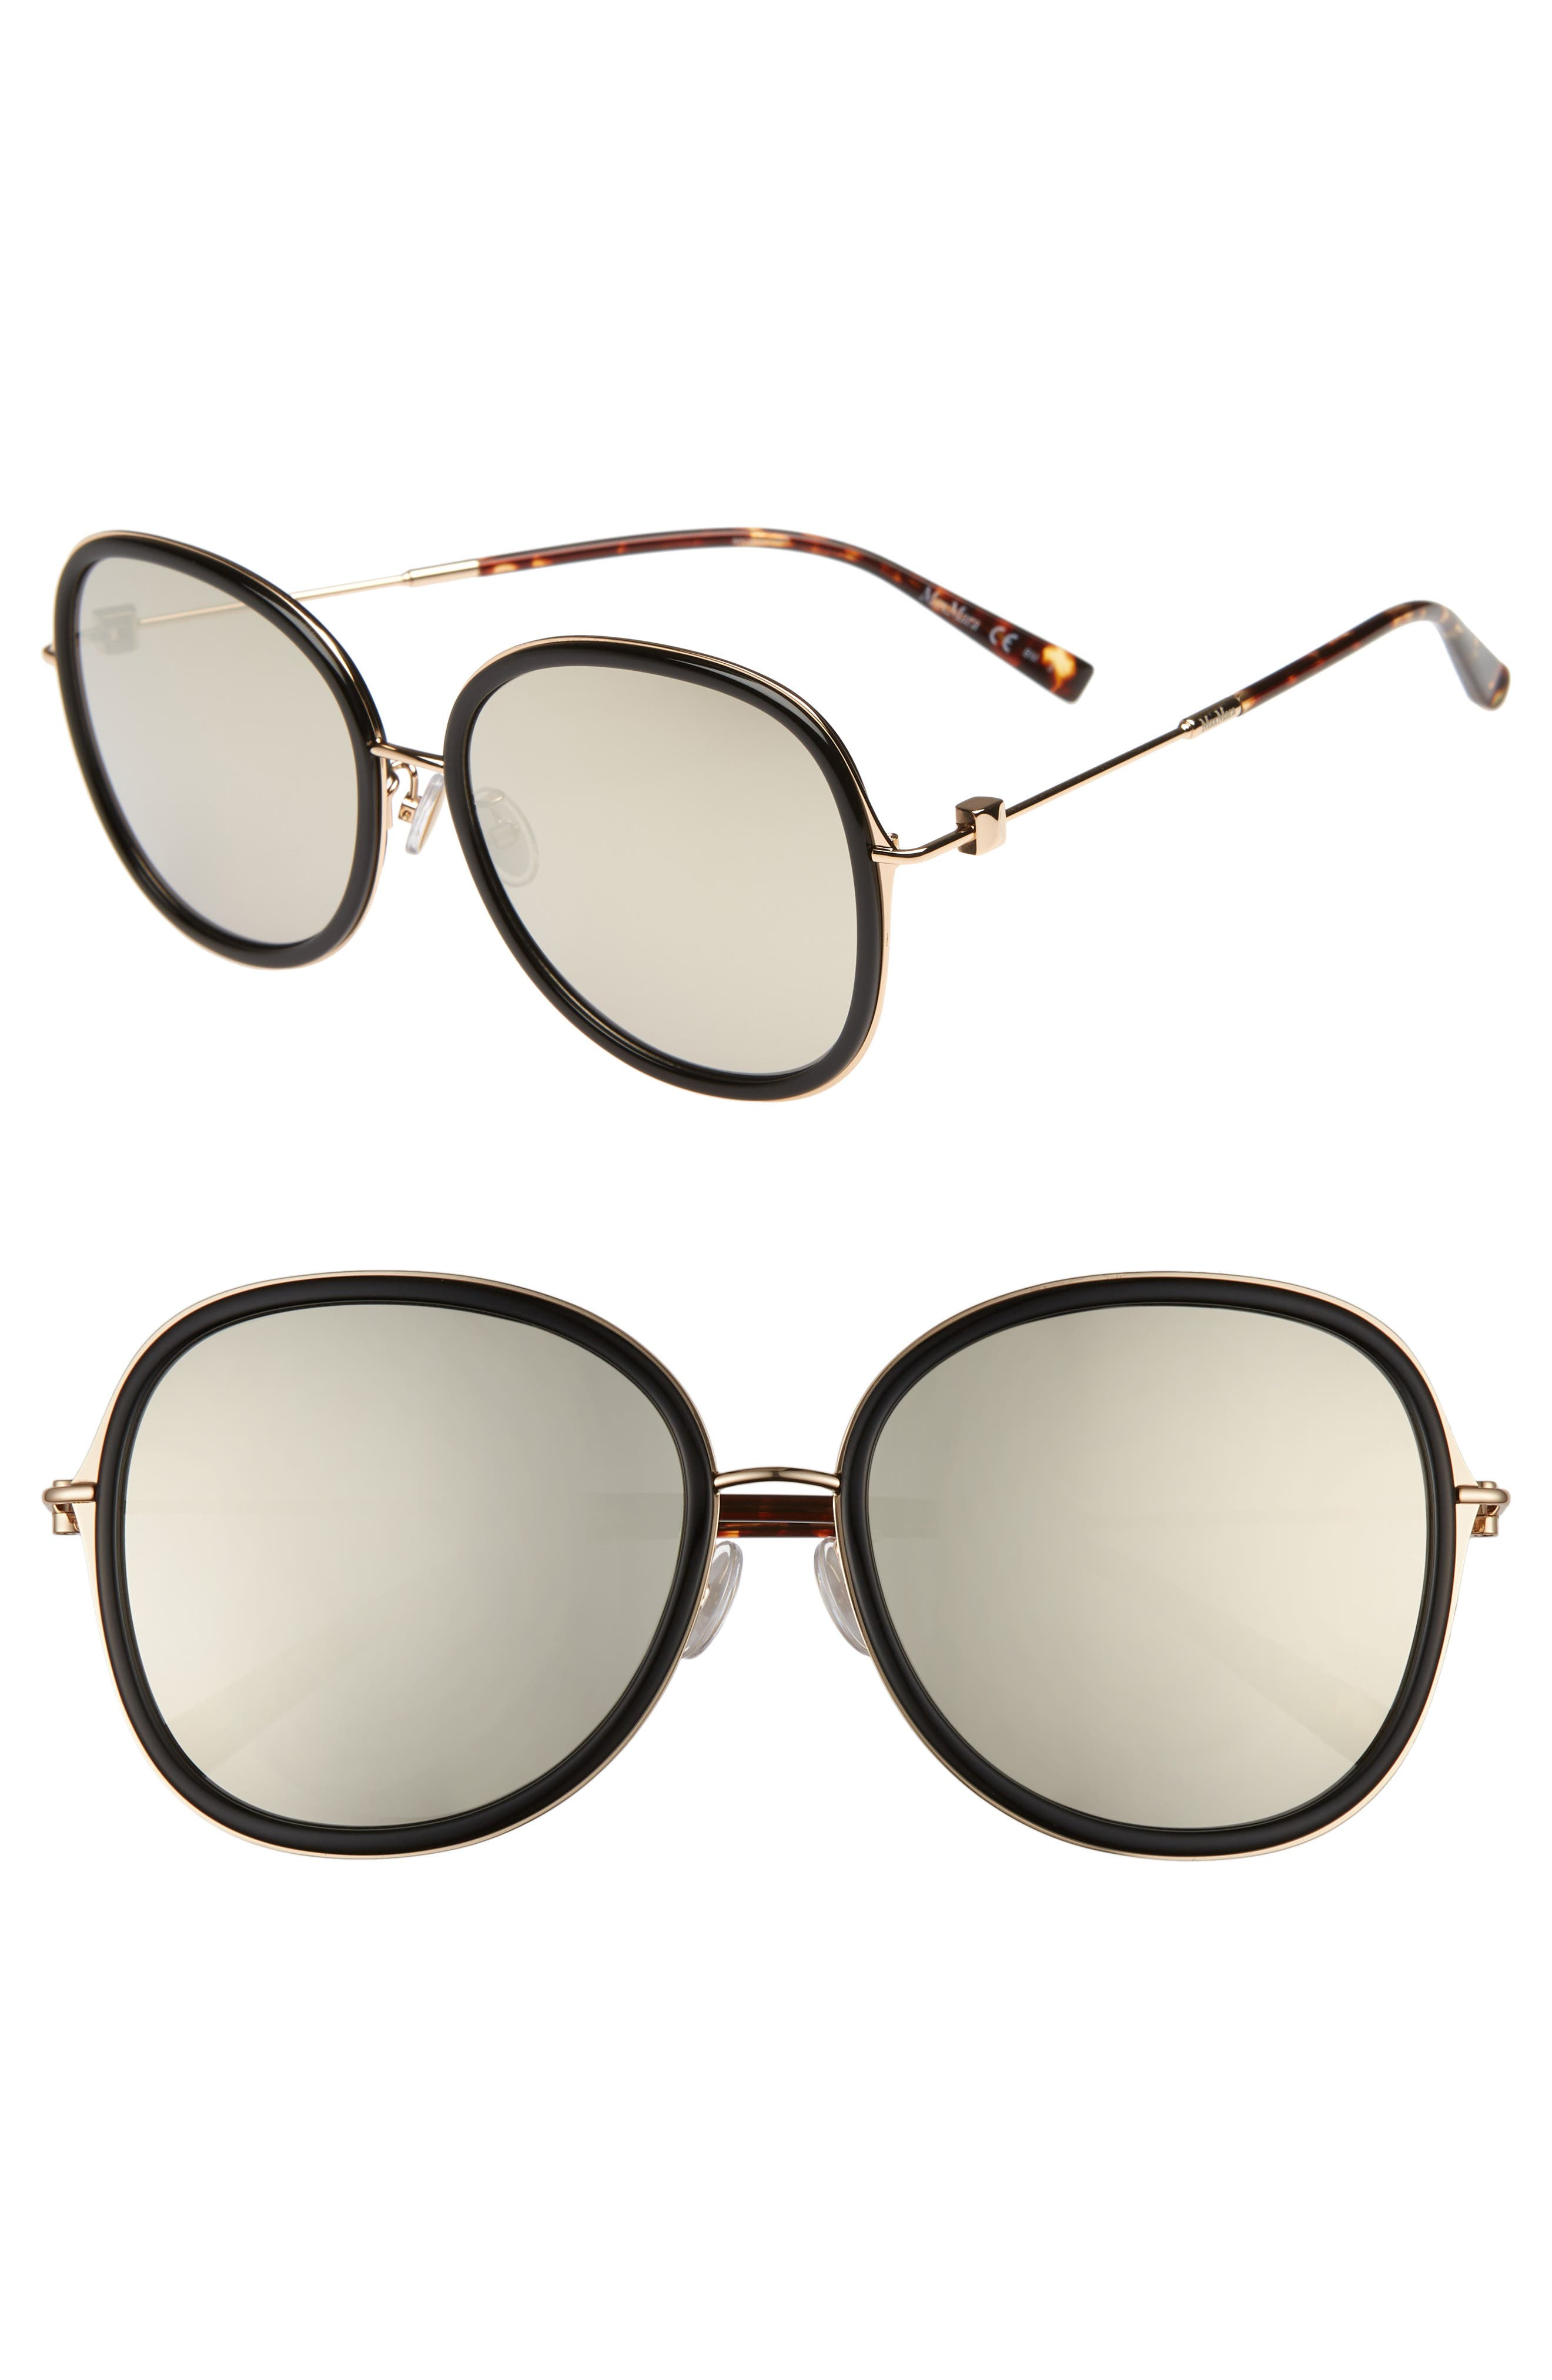 Marilyn 58mm Special Fit Round Sunglasses,                             Main thumbnail 1, color,                             BLACK